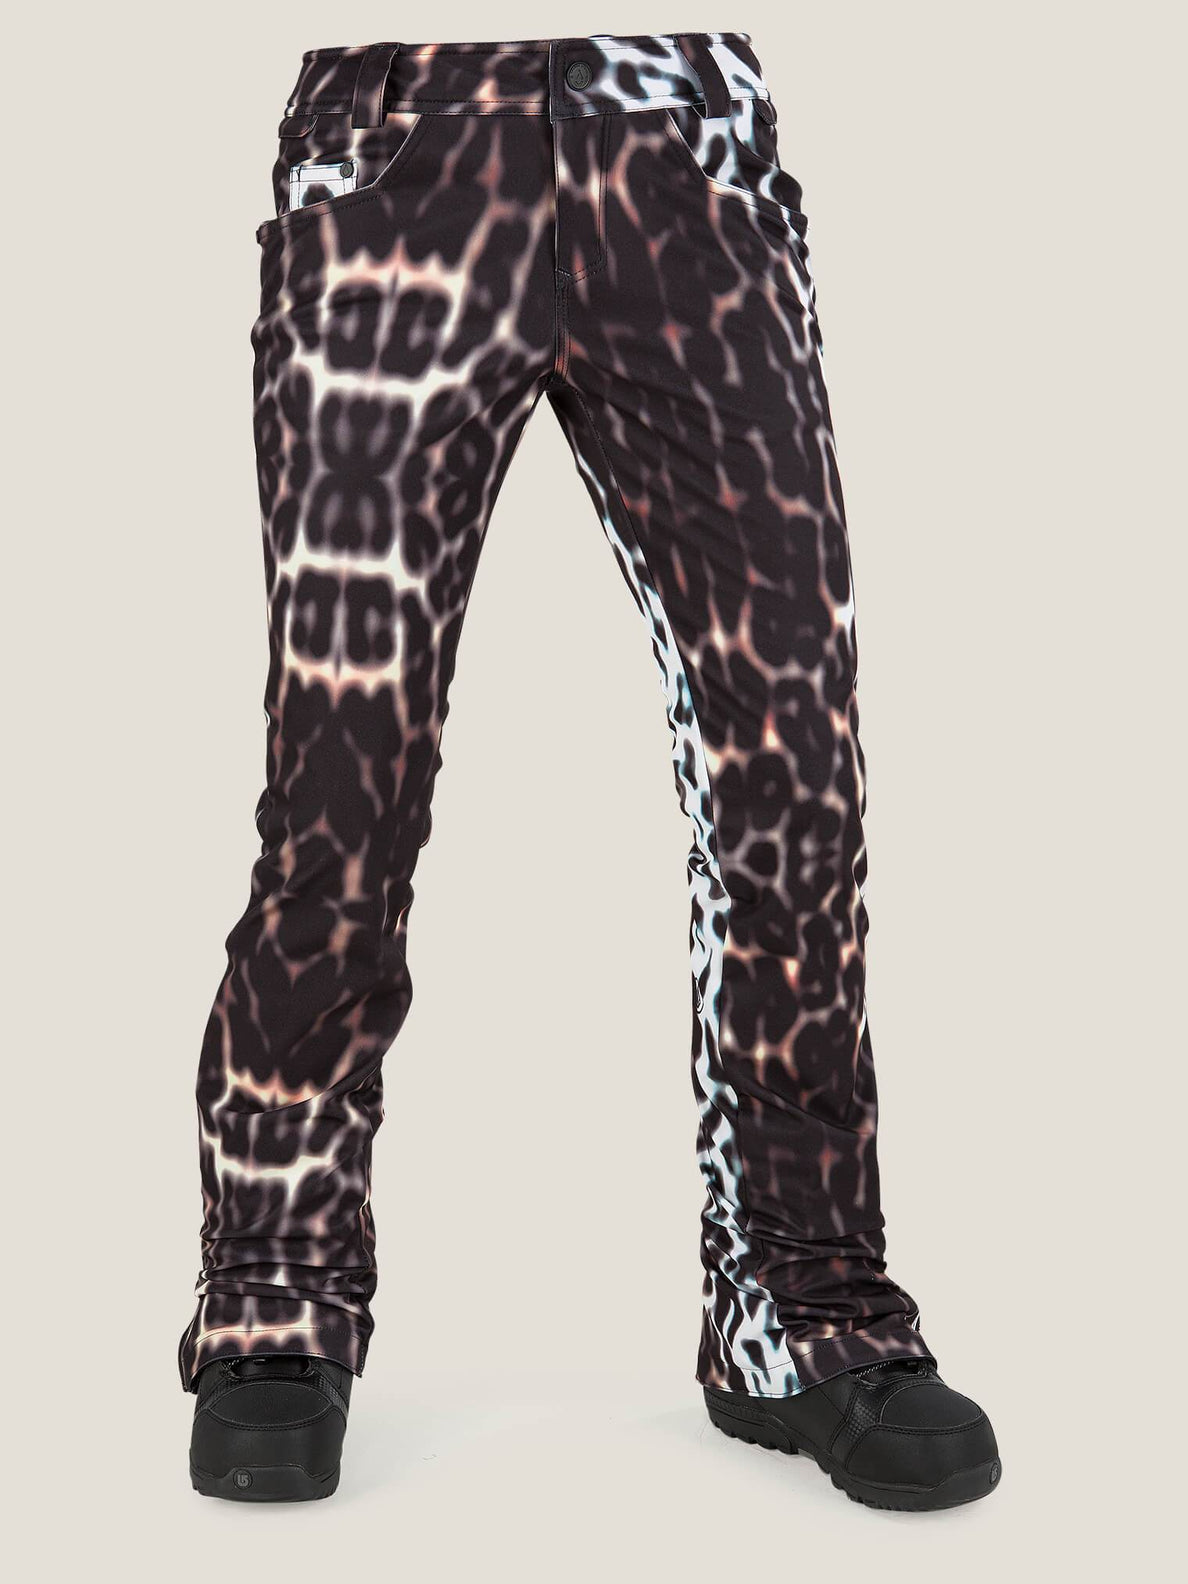 Battle Stretch Pant In Cheetah, Front View